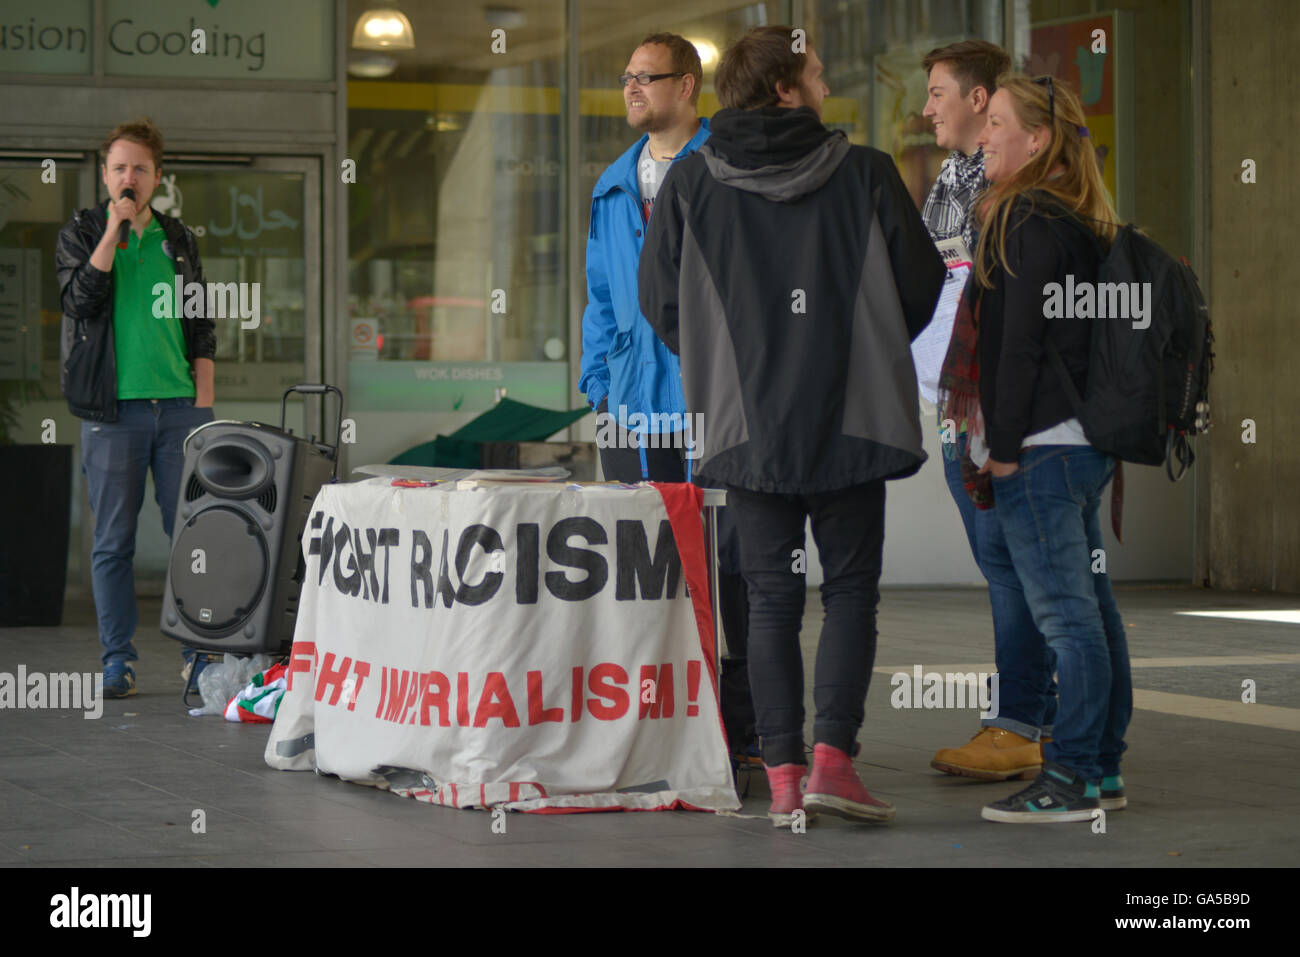 Manchester, UK. 02nd July, 2016. Members of the Fight Racism-Fight Imperialism political party participating in - Stock Image